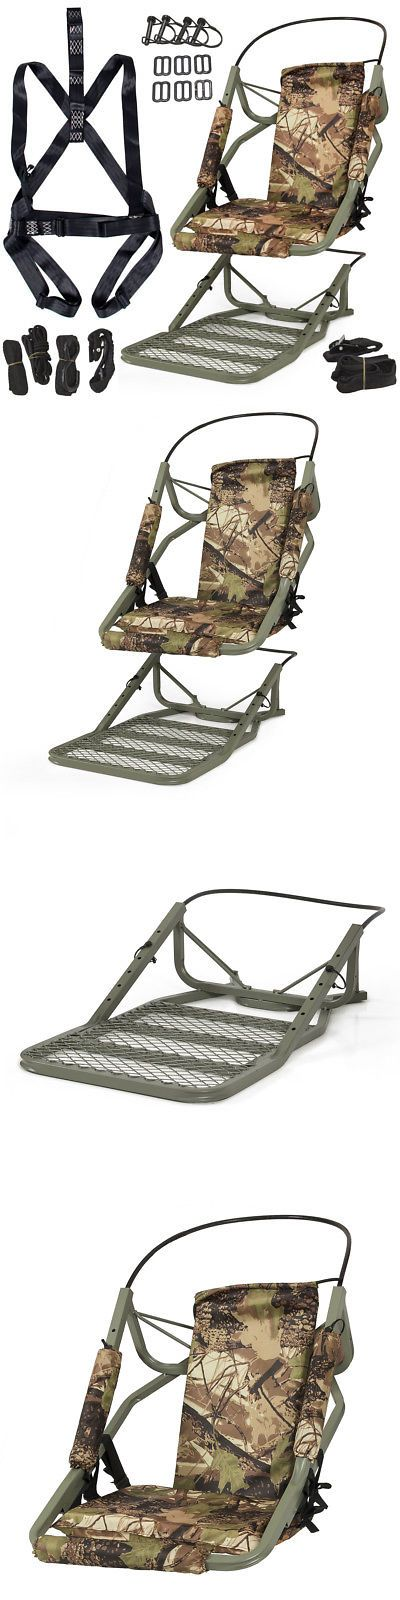 Tree Stands 52508: Portable Tree Stand Climber Climbing Hunting Deer Rifle Bow Game Hunt + Harness -> BUY IT NOW ONLY: $74.98 on eBay!